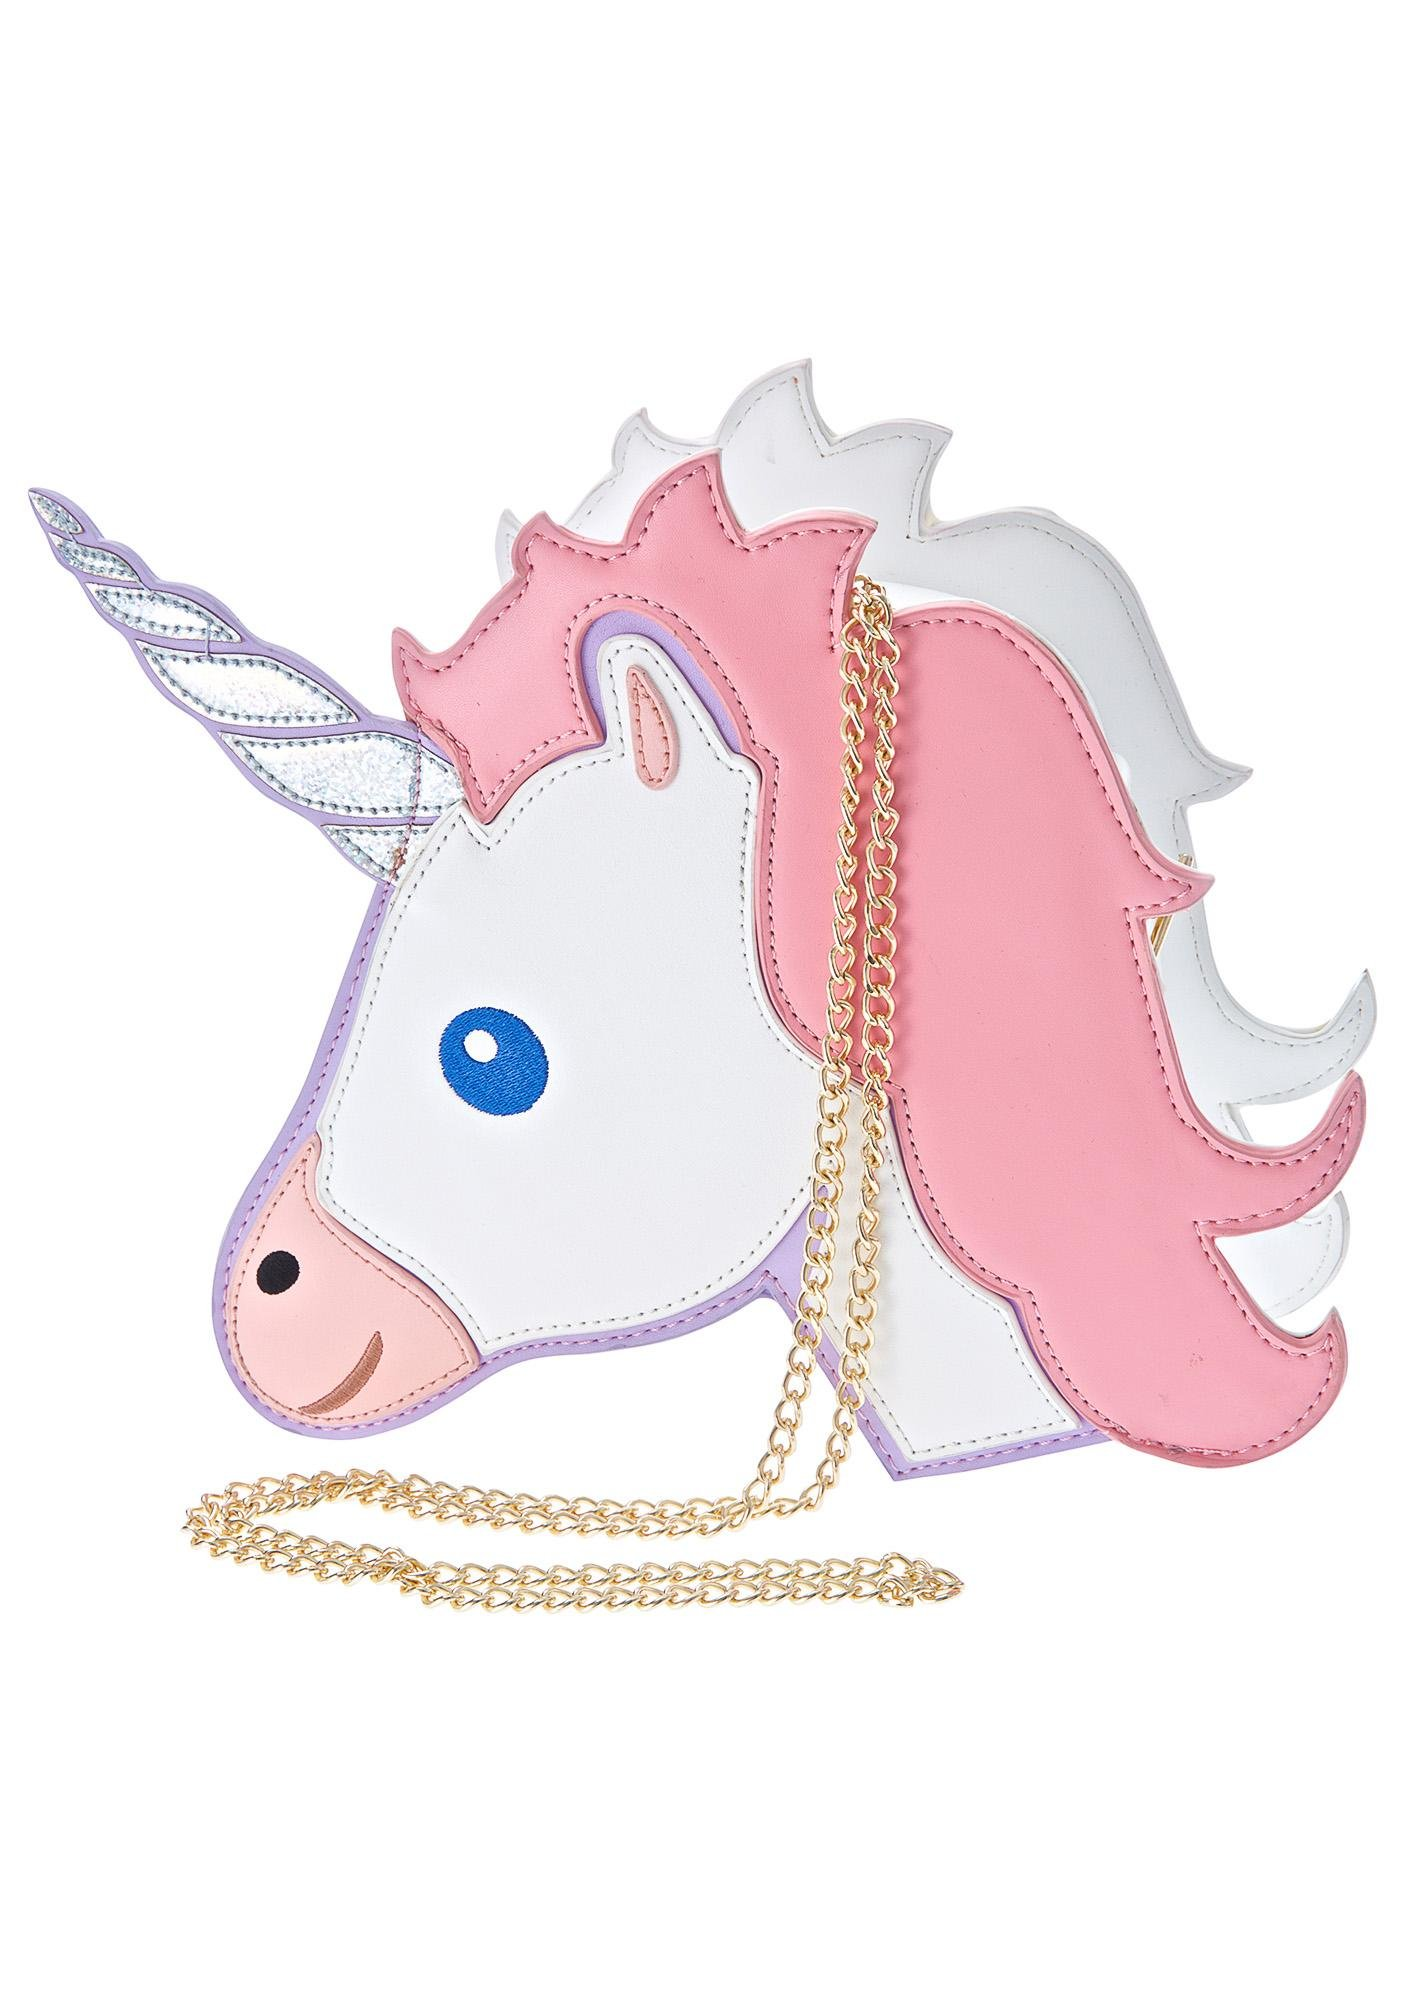 Nila Anthony Unicorn Bag